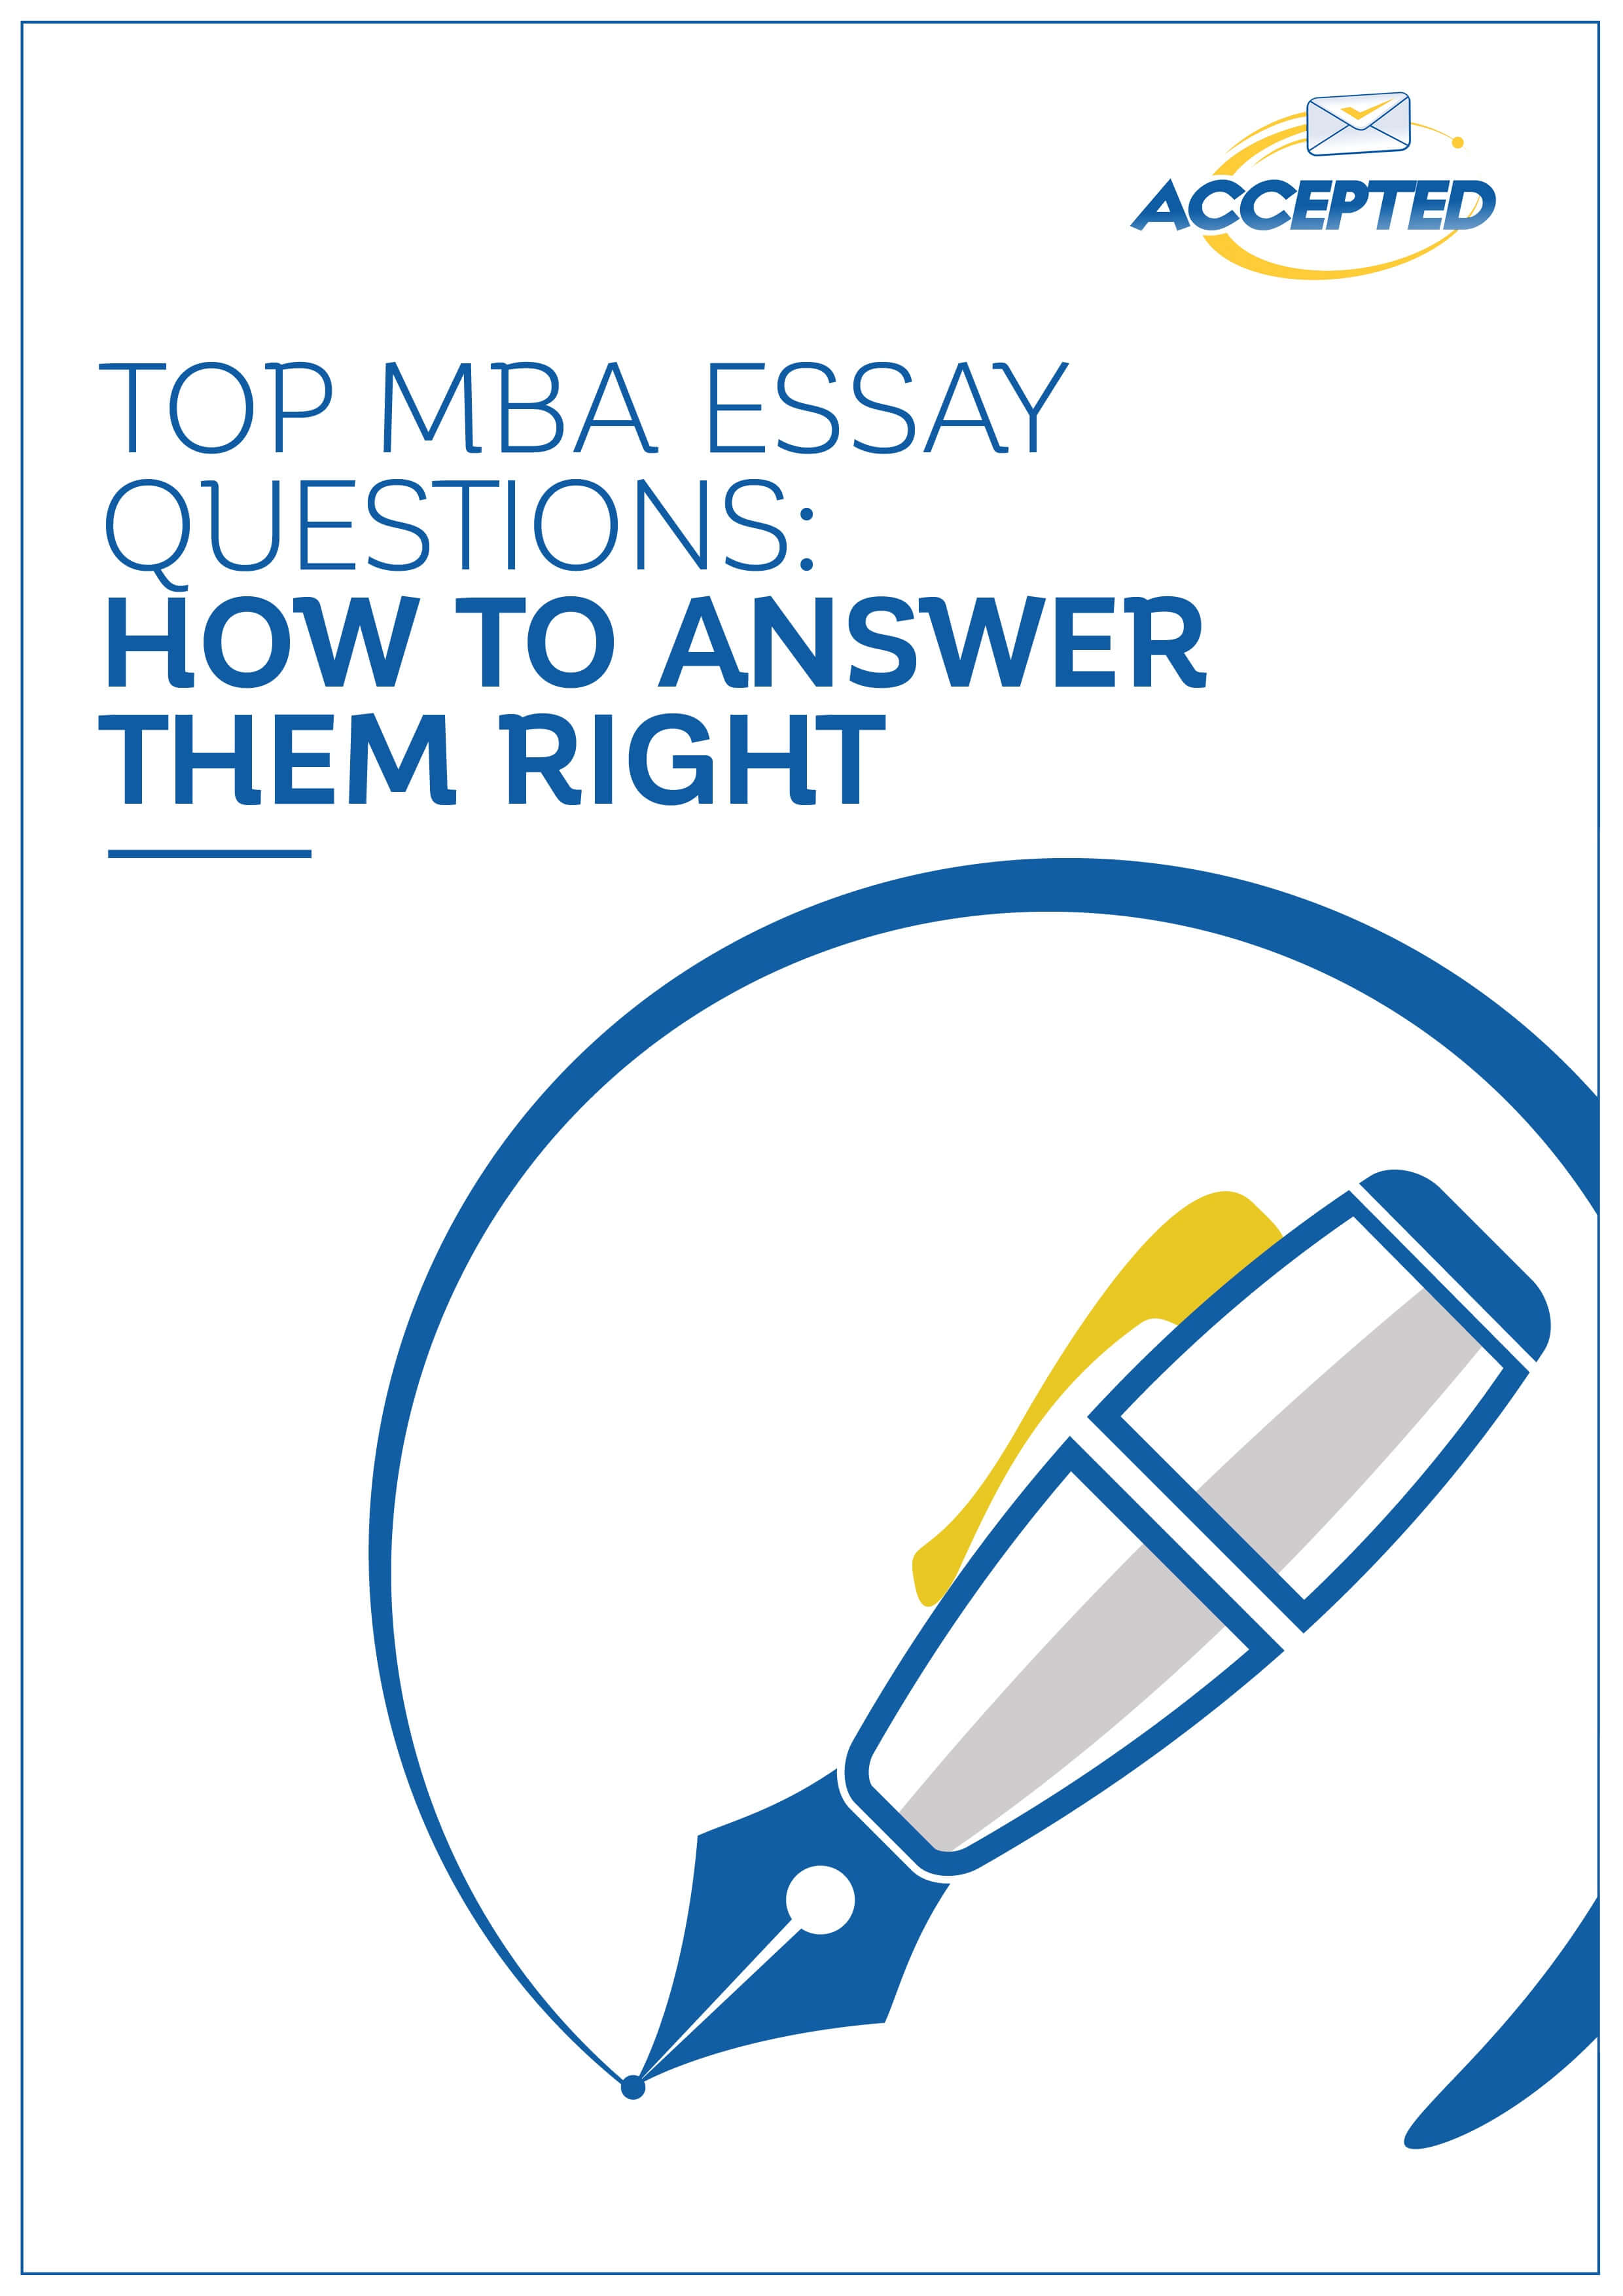 Top_MBA_Essay_Questions_-_How_to_Answer_them_right_-_LP.jpg